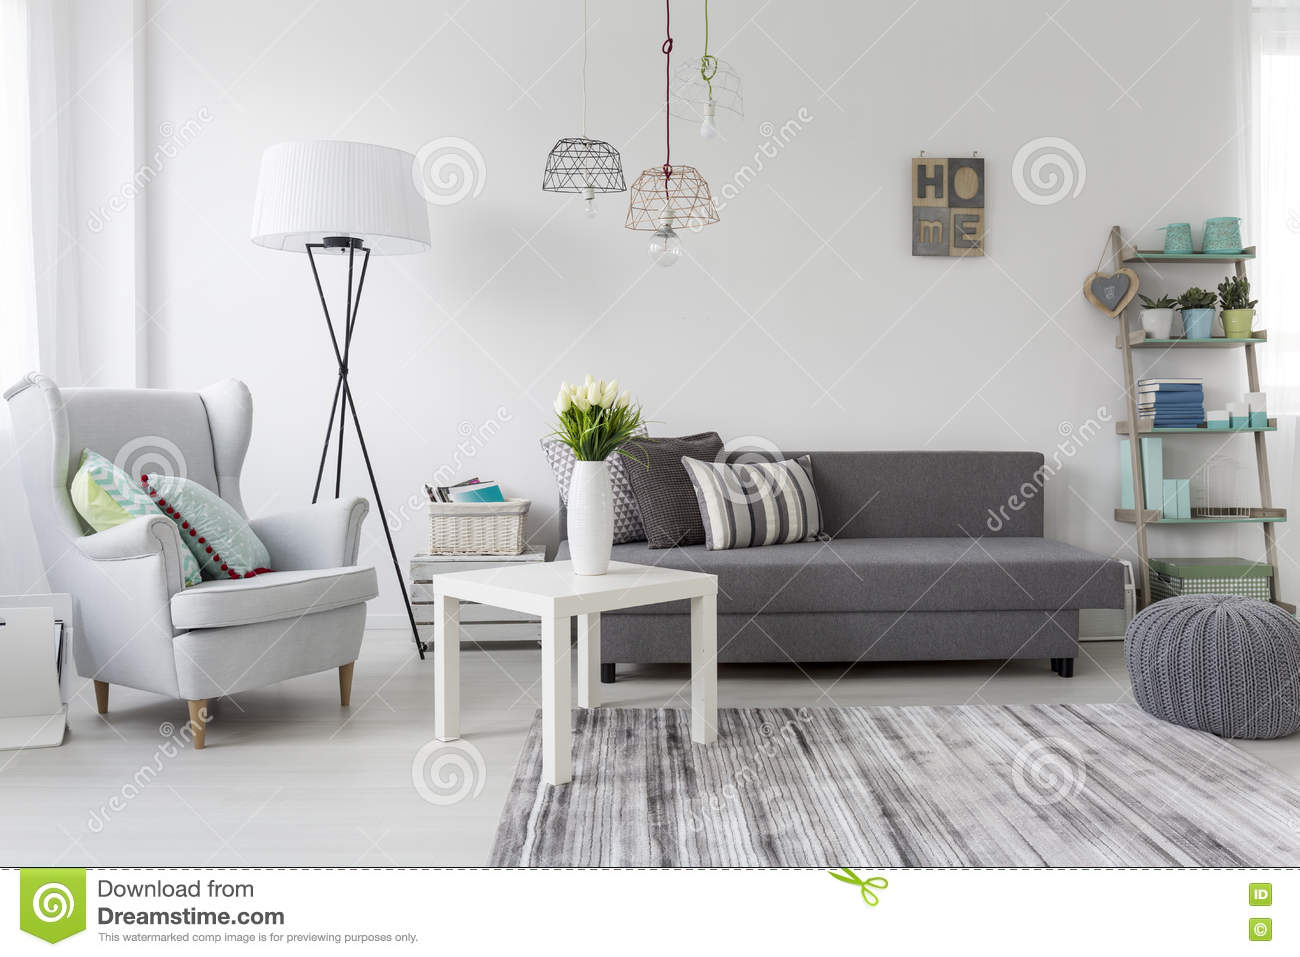 Modern Living Room Interior With A Grey Armchair Stock Photo - Image ...